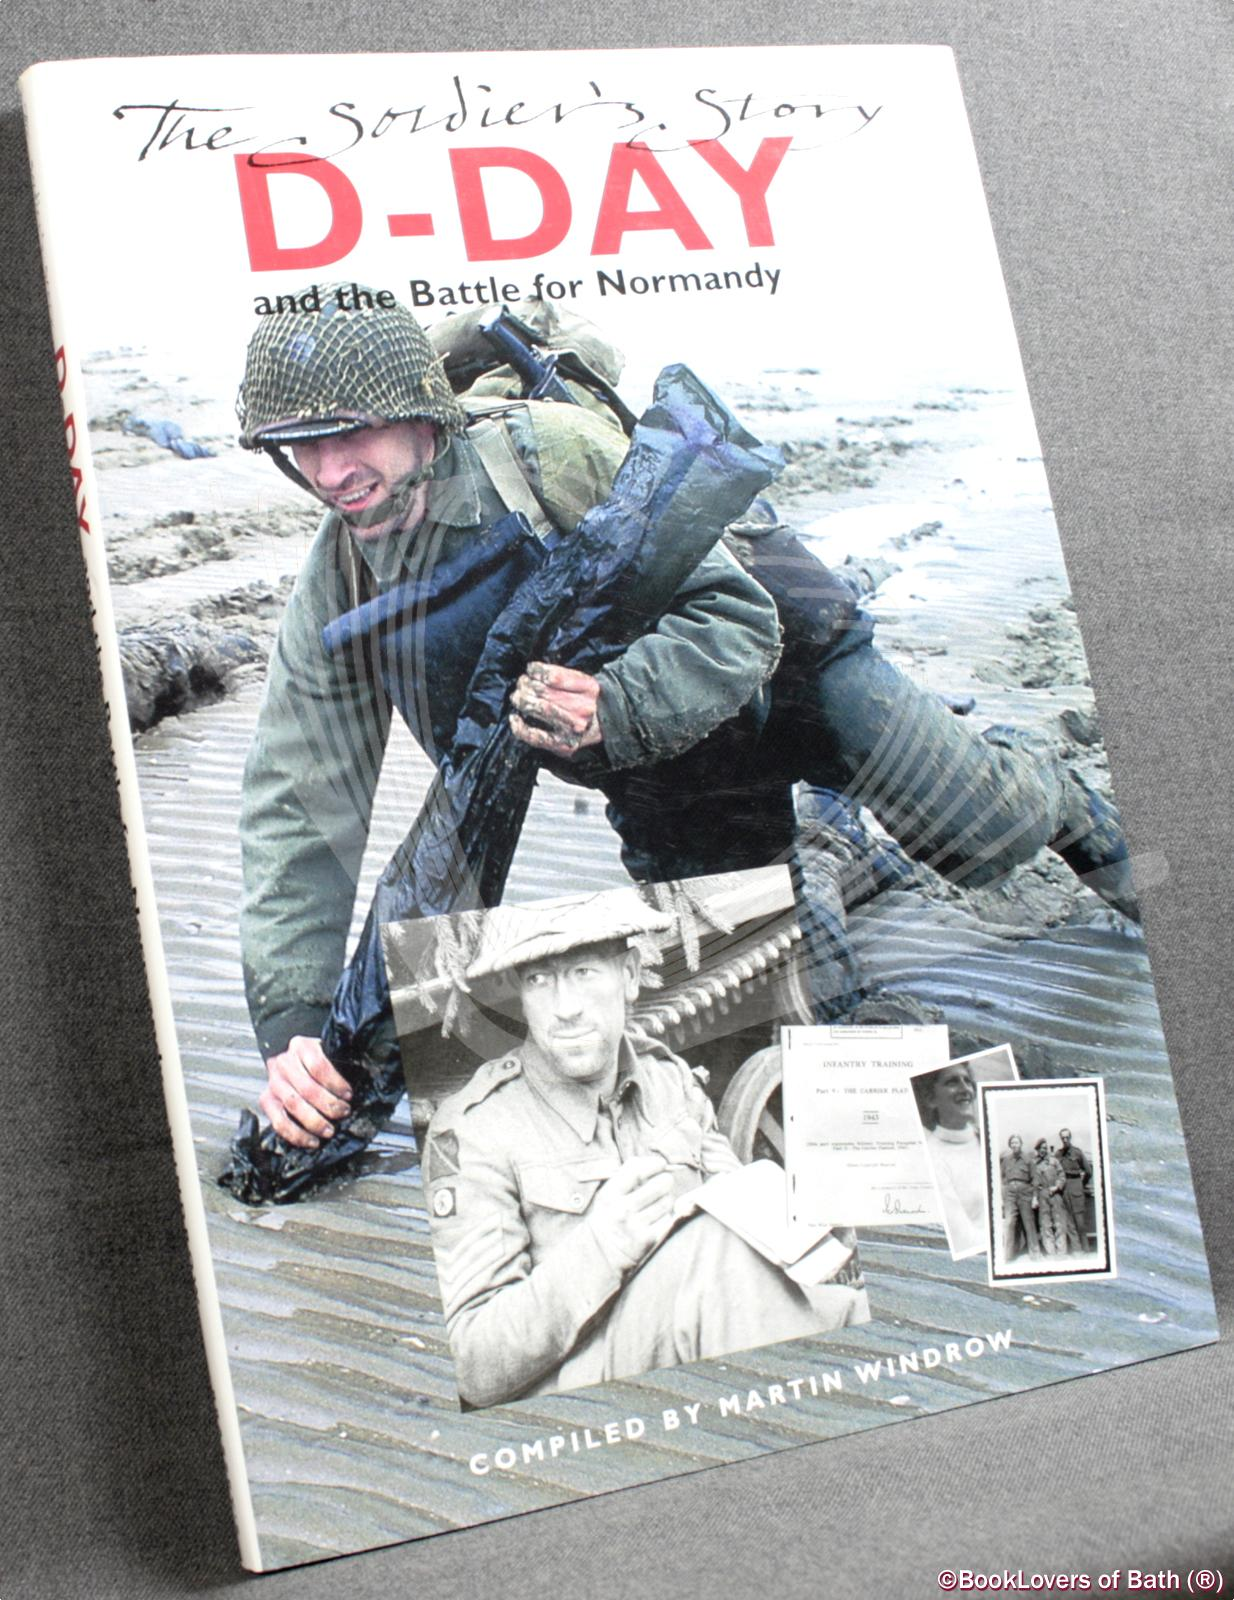 D-Day and The Battle for Normandy: The Soldier's Story - Martin Windrow